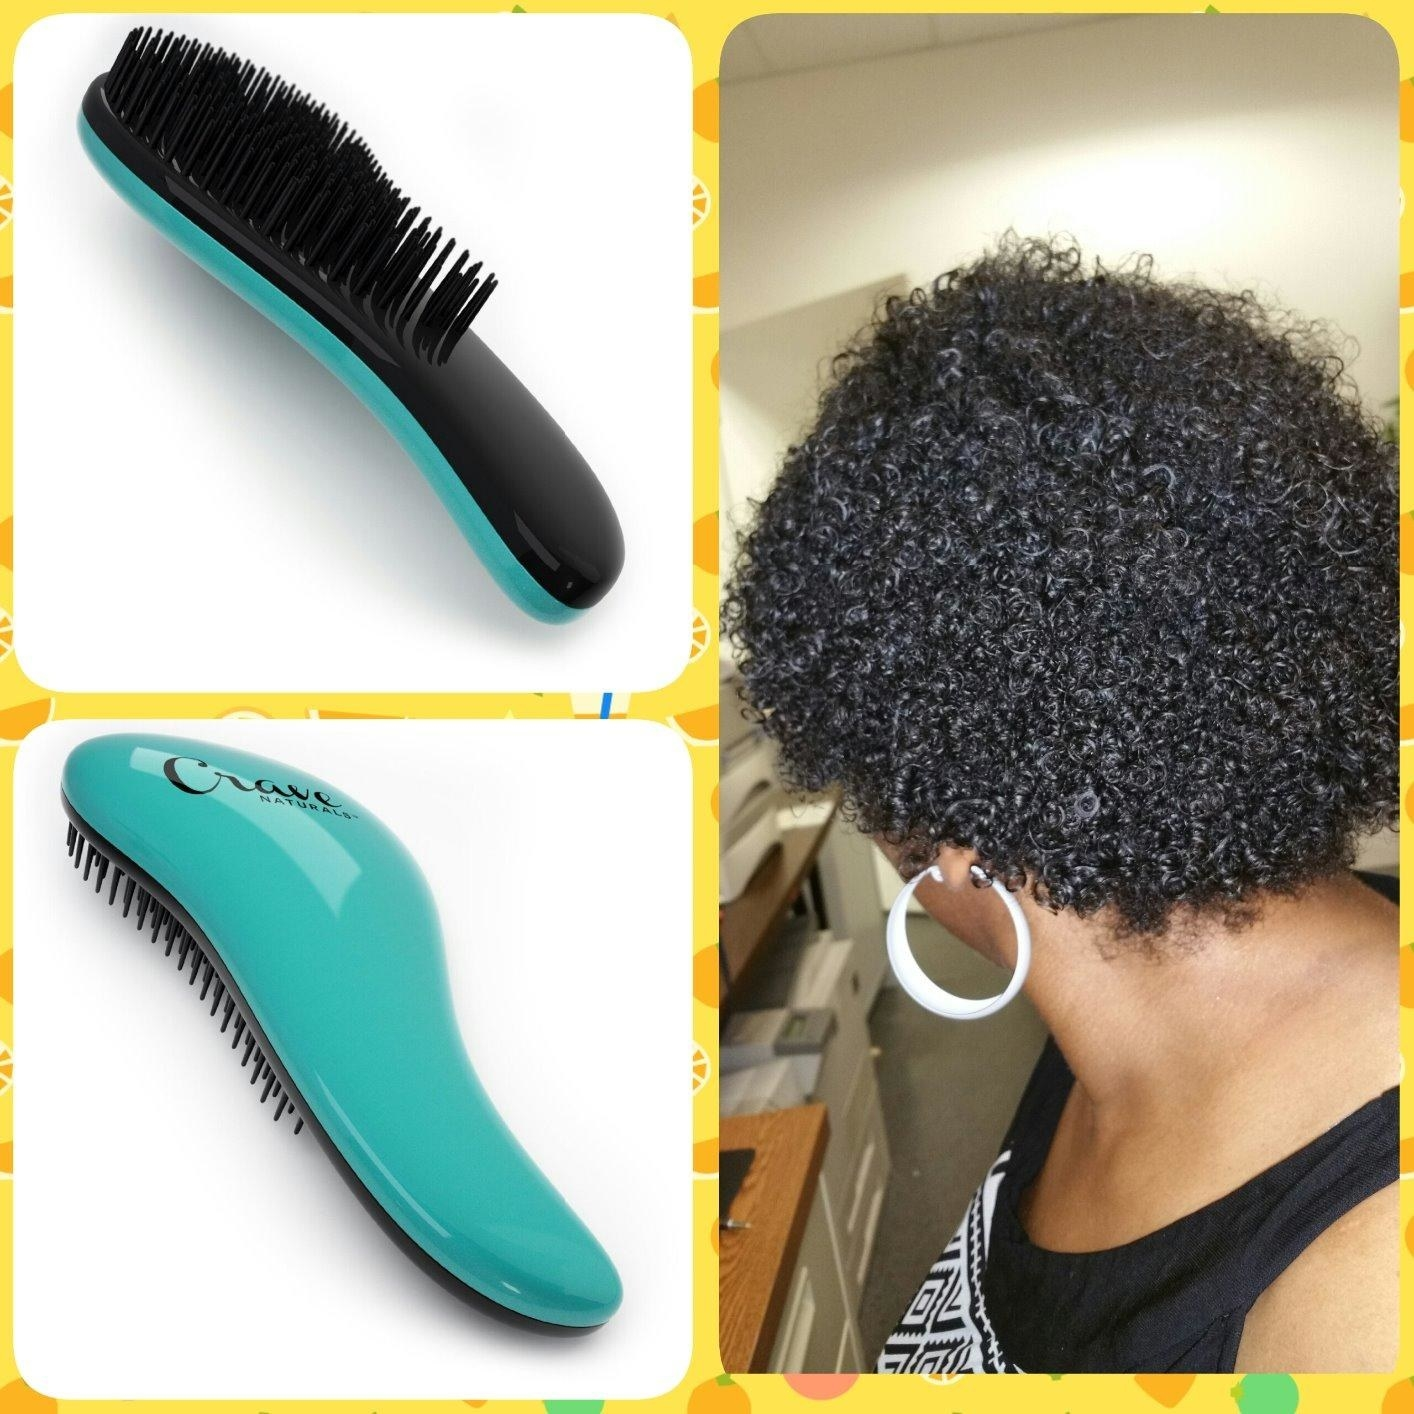 A collage of photos, with the brush in teal and the reviewer's natural hair